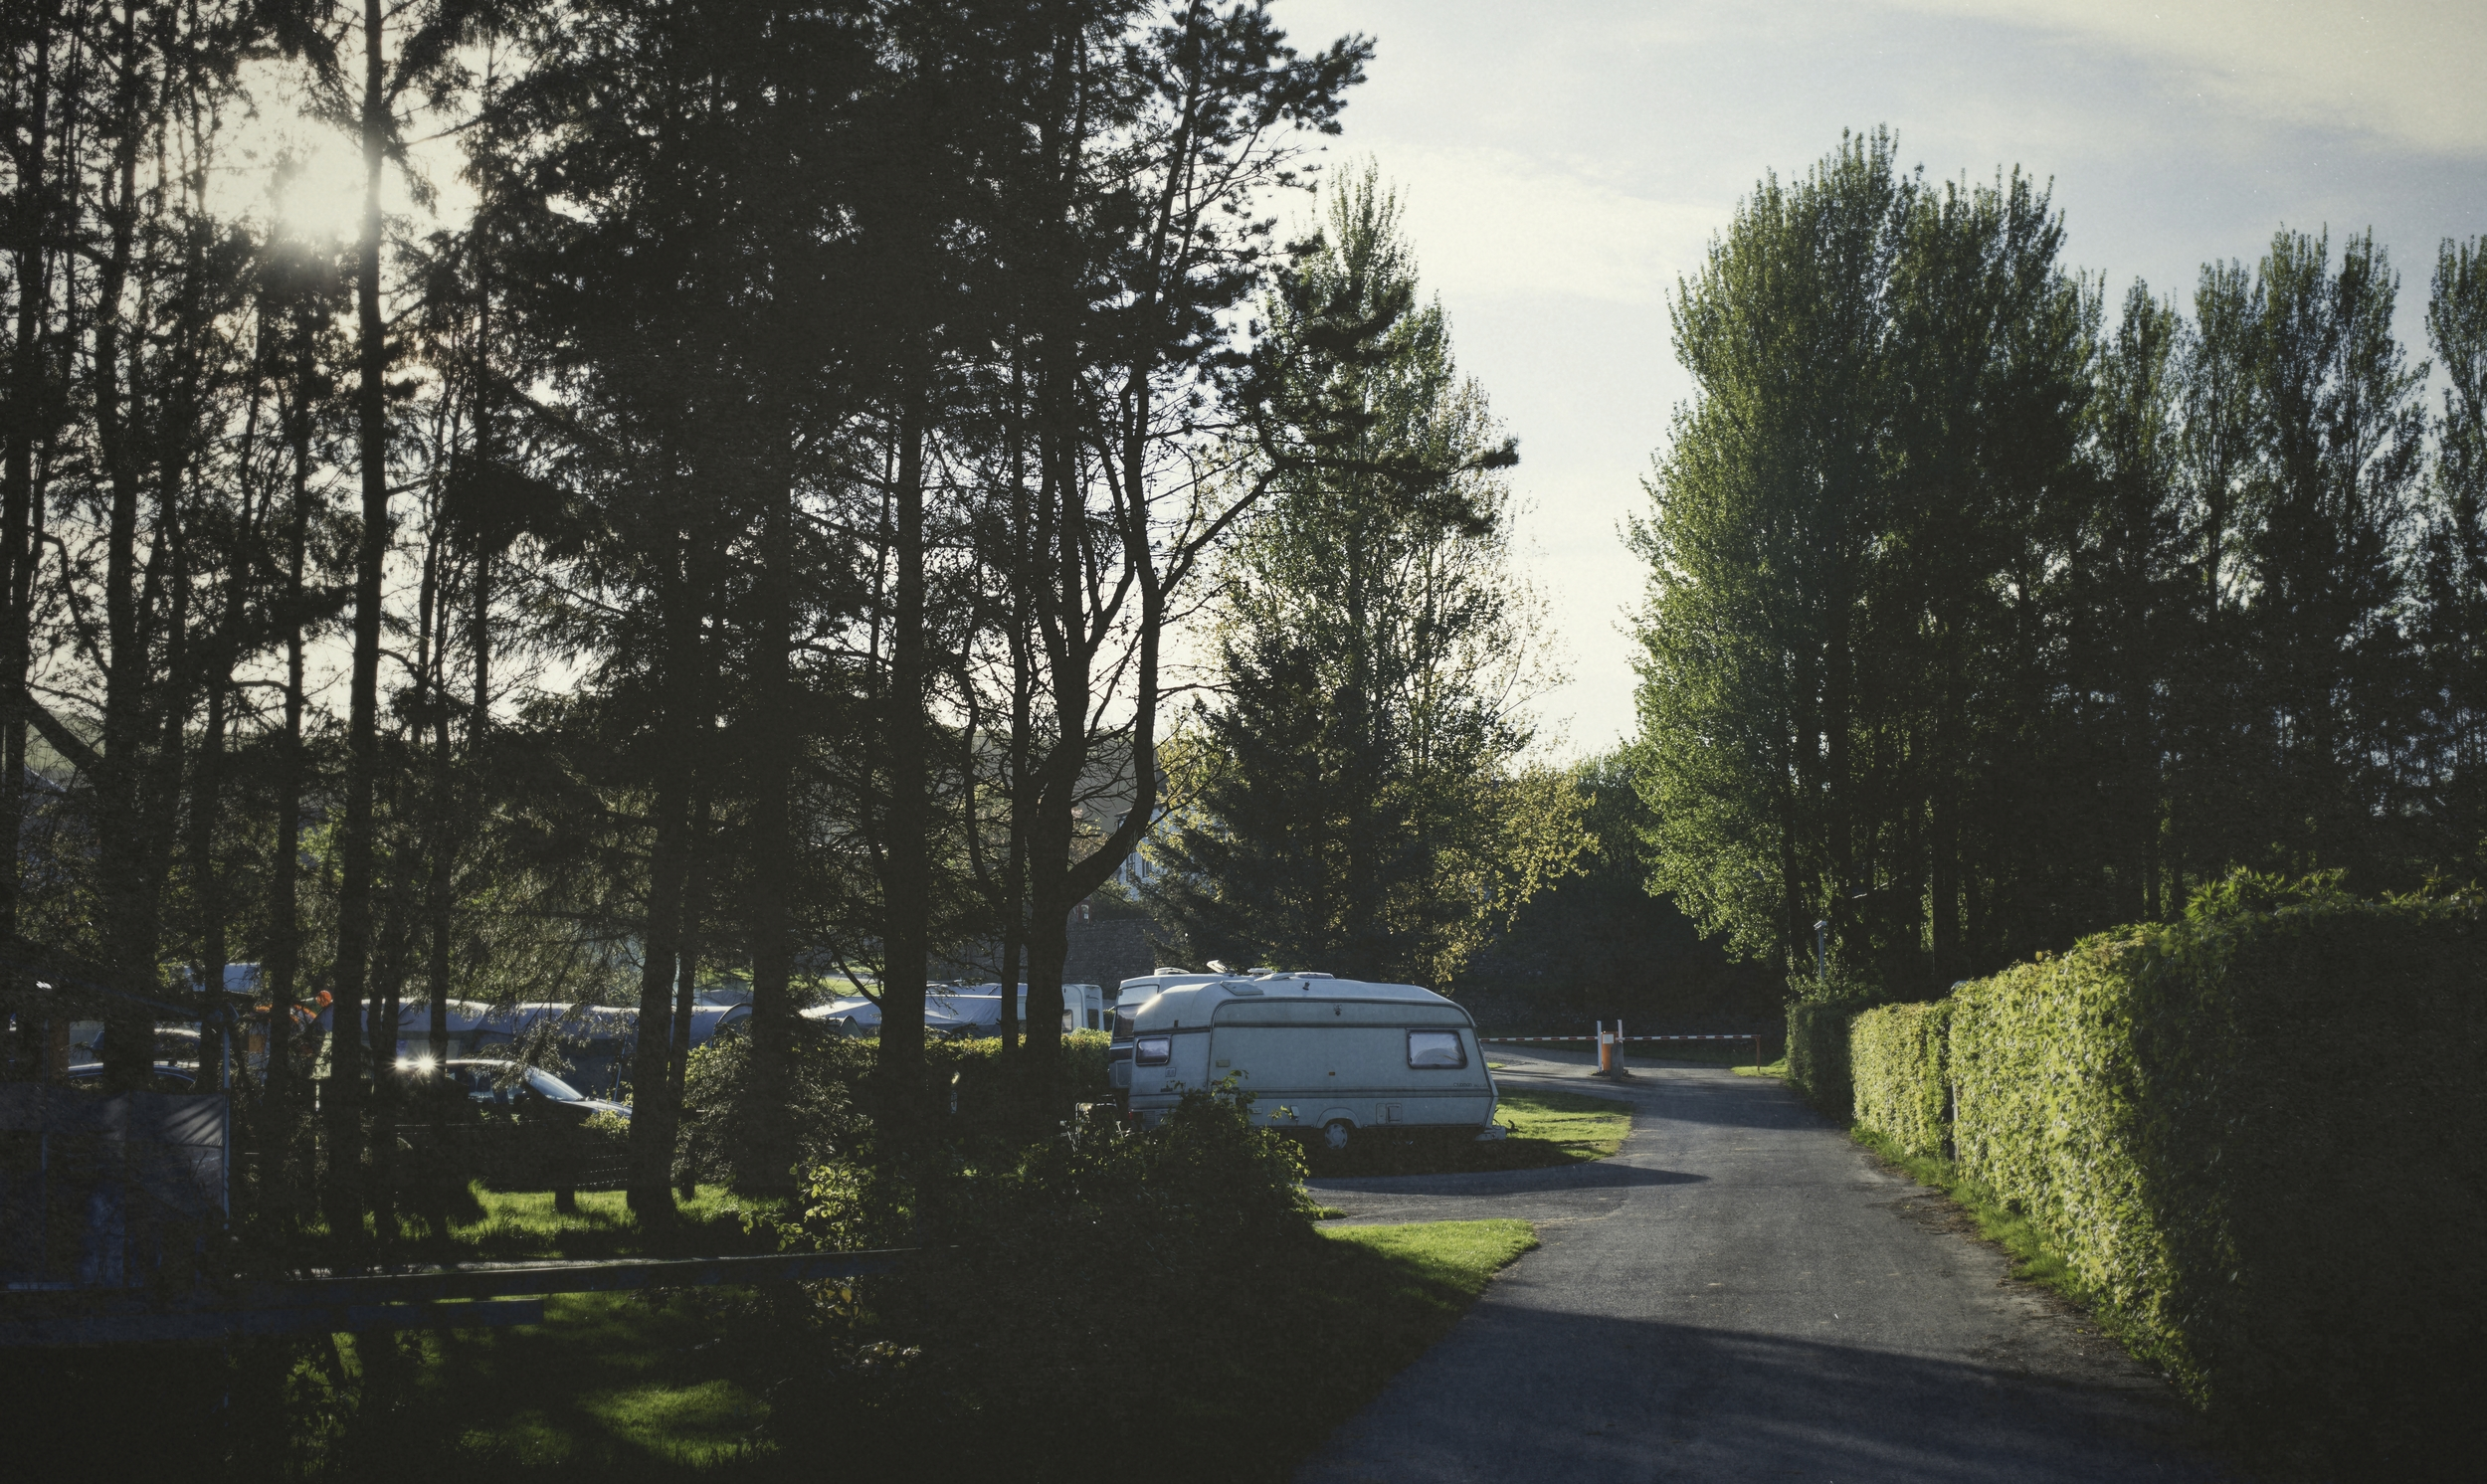 Knight Stainforth Campsite